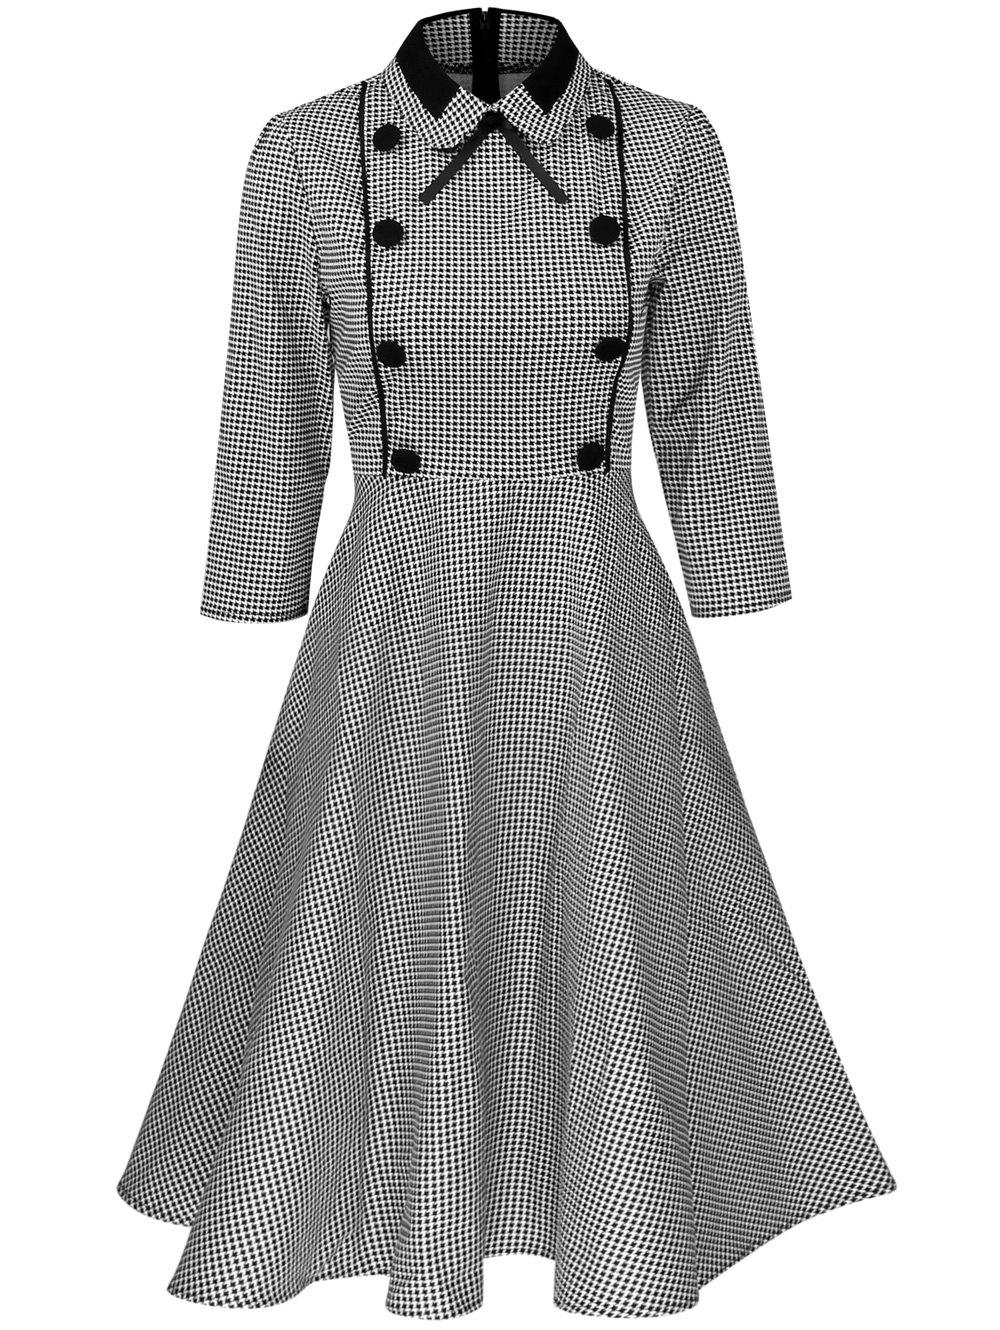 Hot Plus Size Vintage Houndstooth Print Pin Up Dress